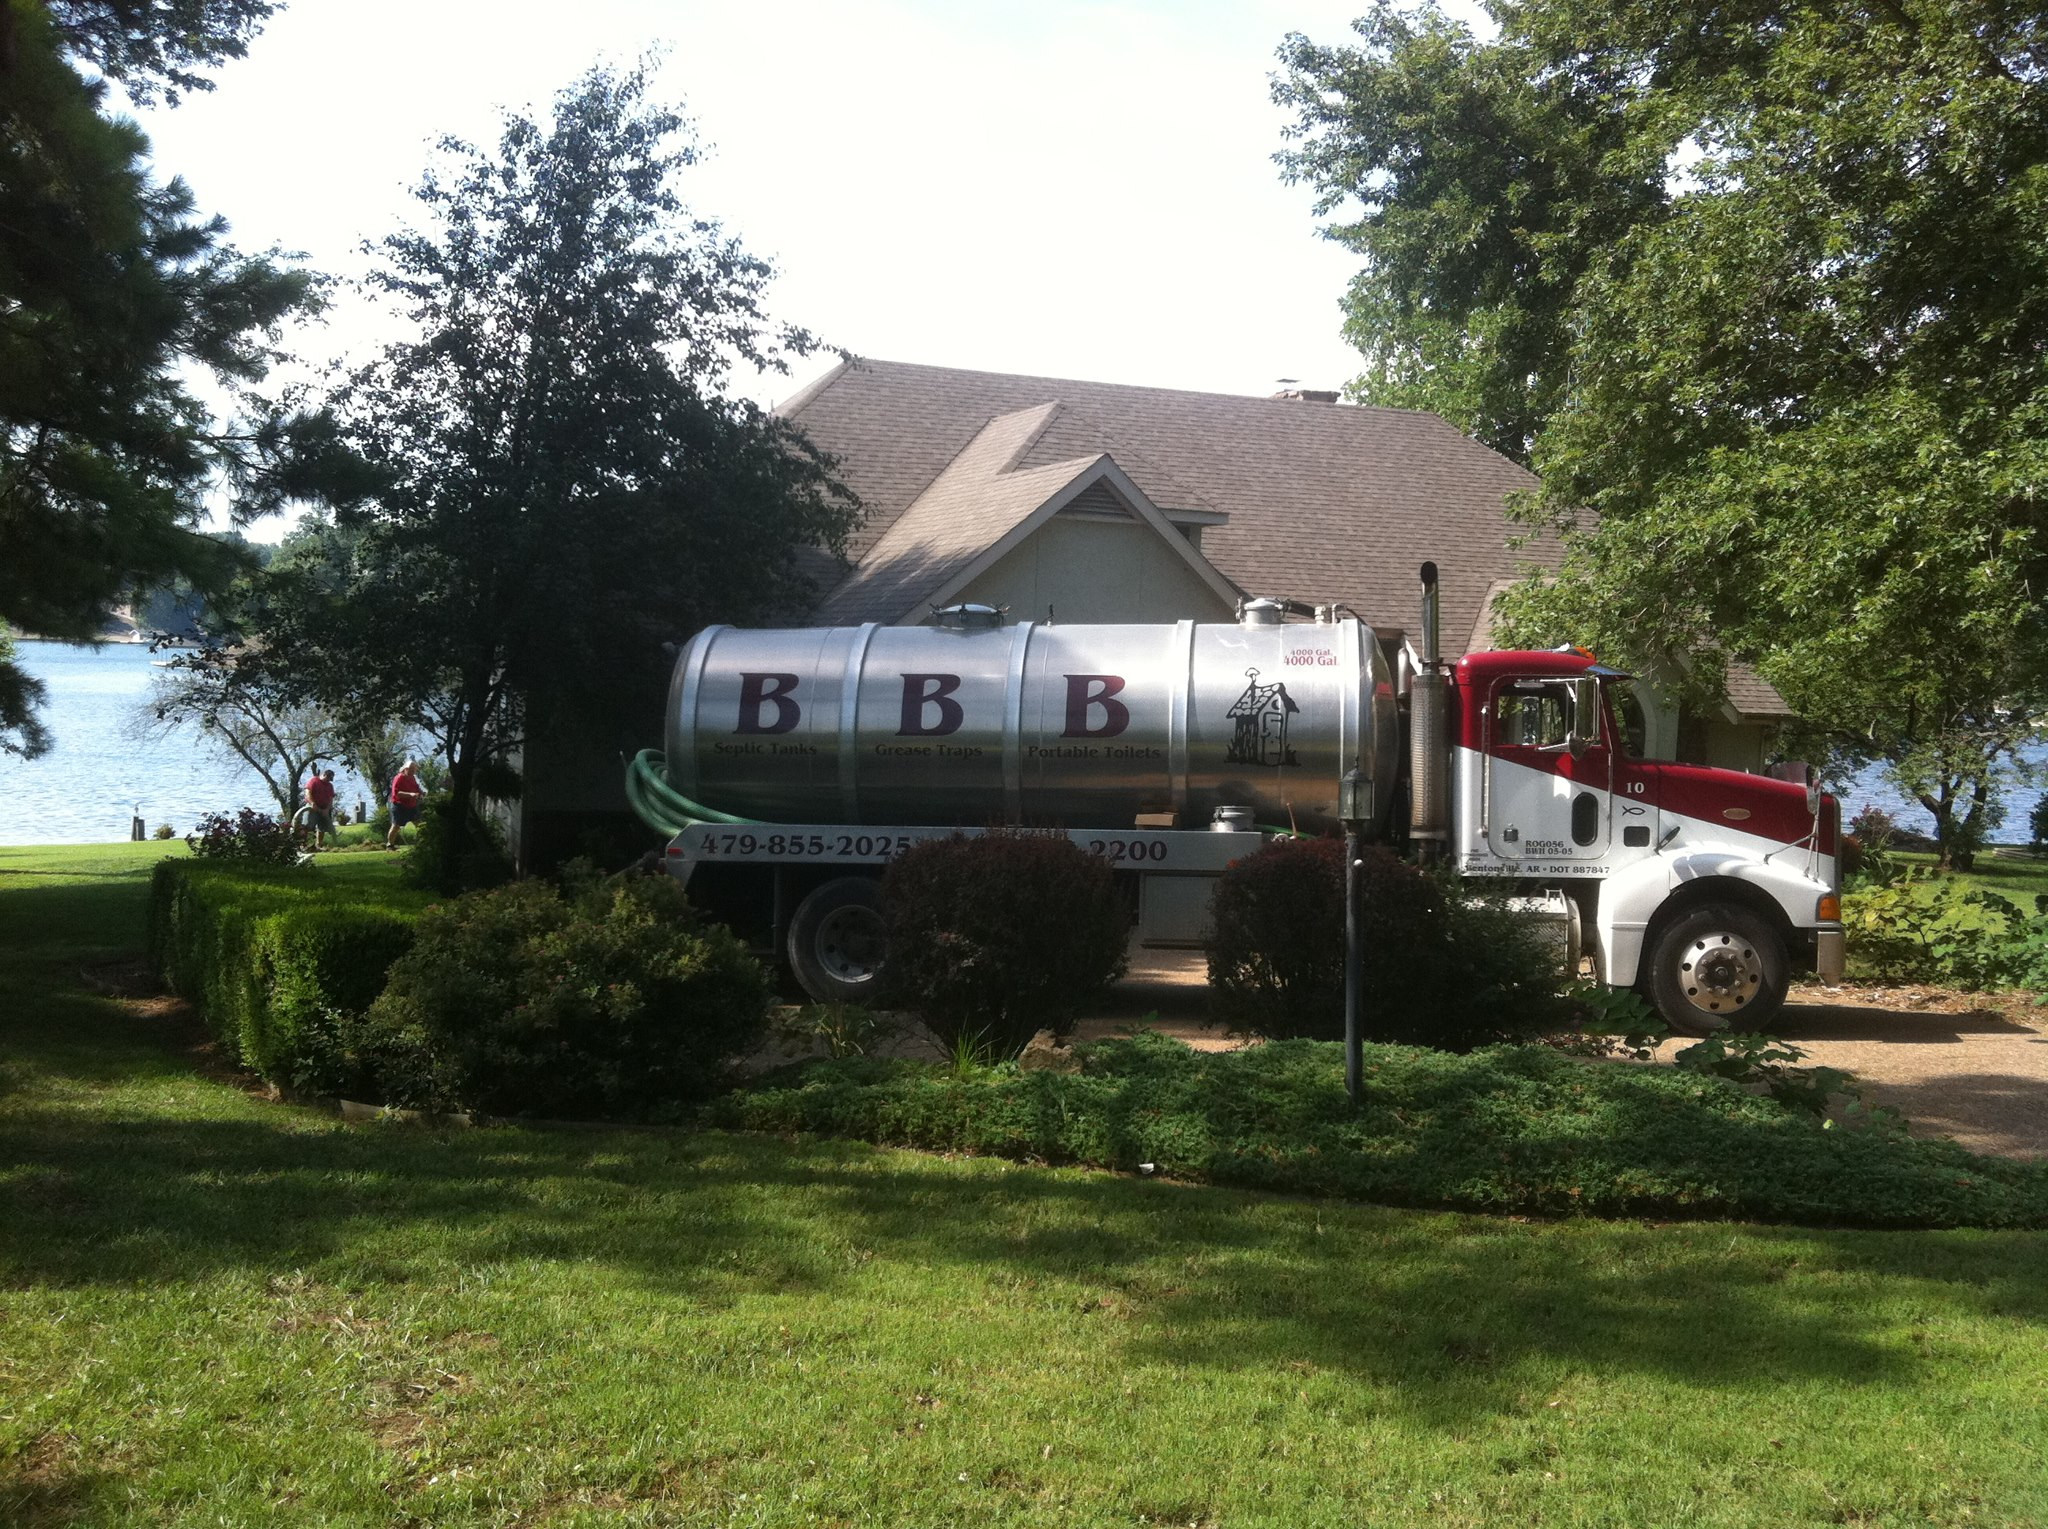 Bentonville Company Reminds Clients Of The Importance Of Septic Tank Pumping As Part Of Septic Smart Week